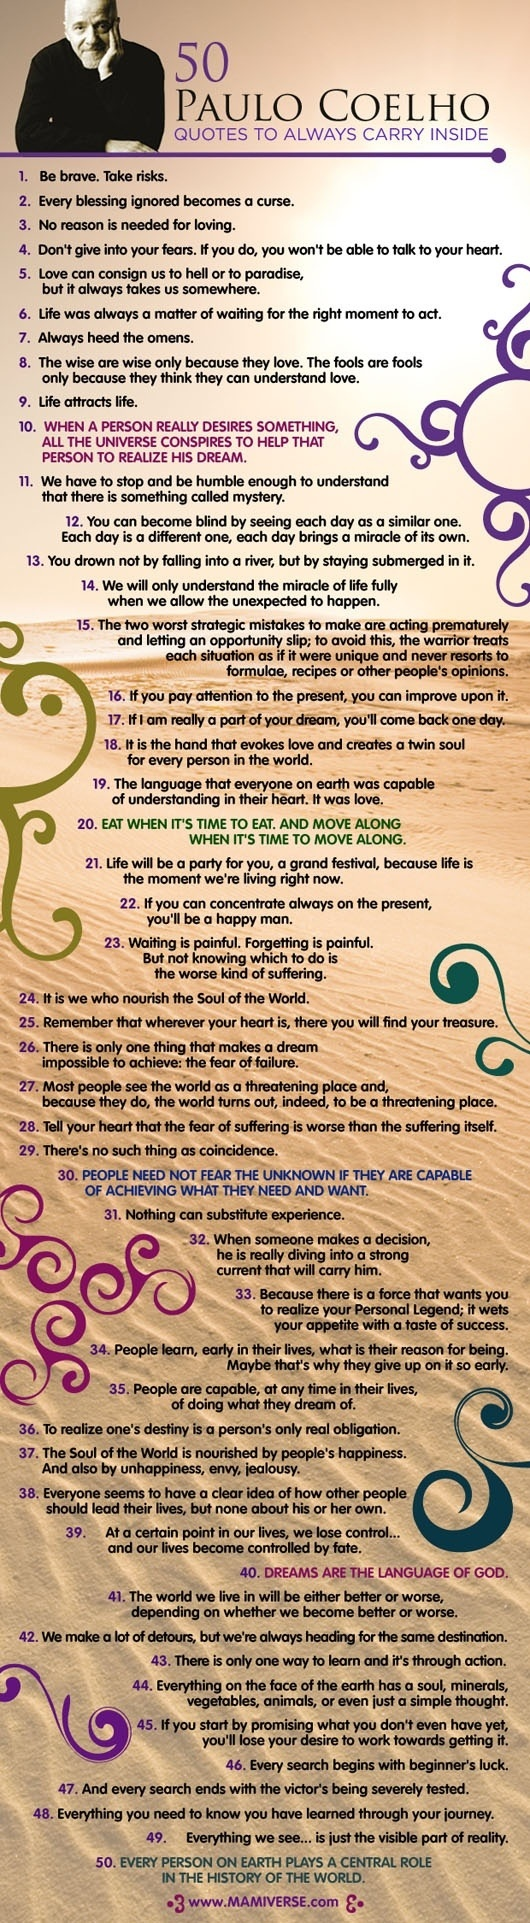 paulo coelho quotes for the soul dusty ranft elephant journal source infographicaday com via john kremer